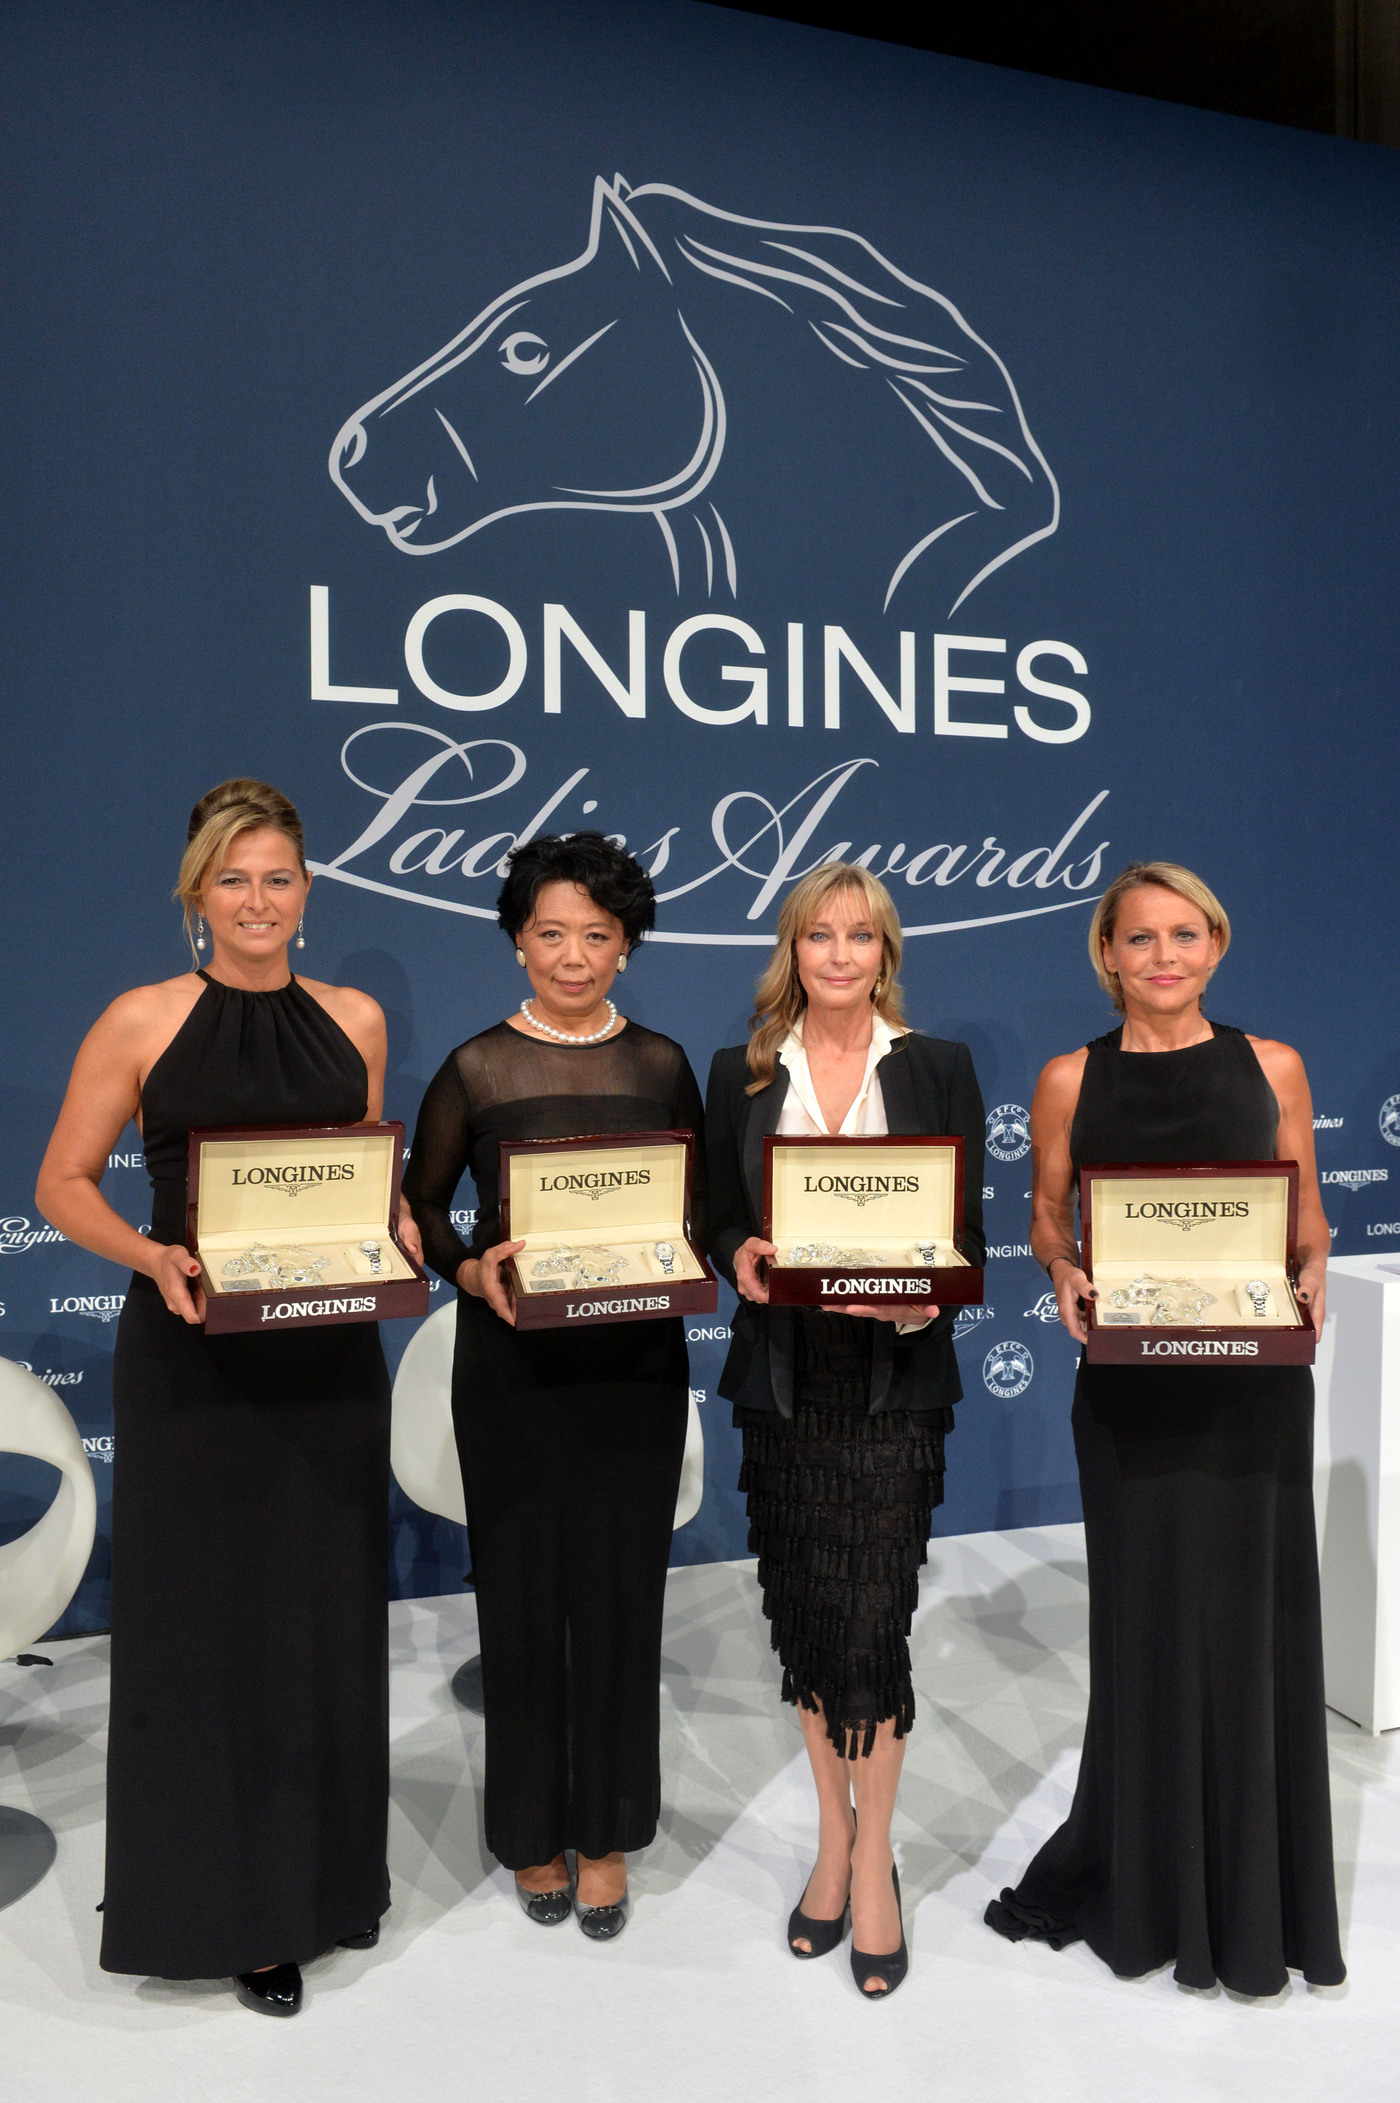 Longines Flat Racing Event: Longines Ladies Awards 2014 – Passion and elegance rewarded 8